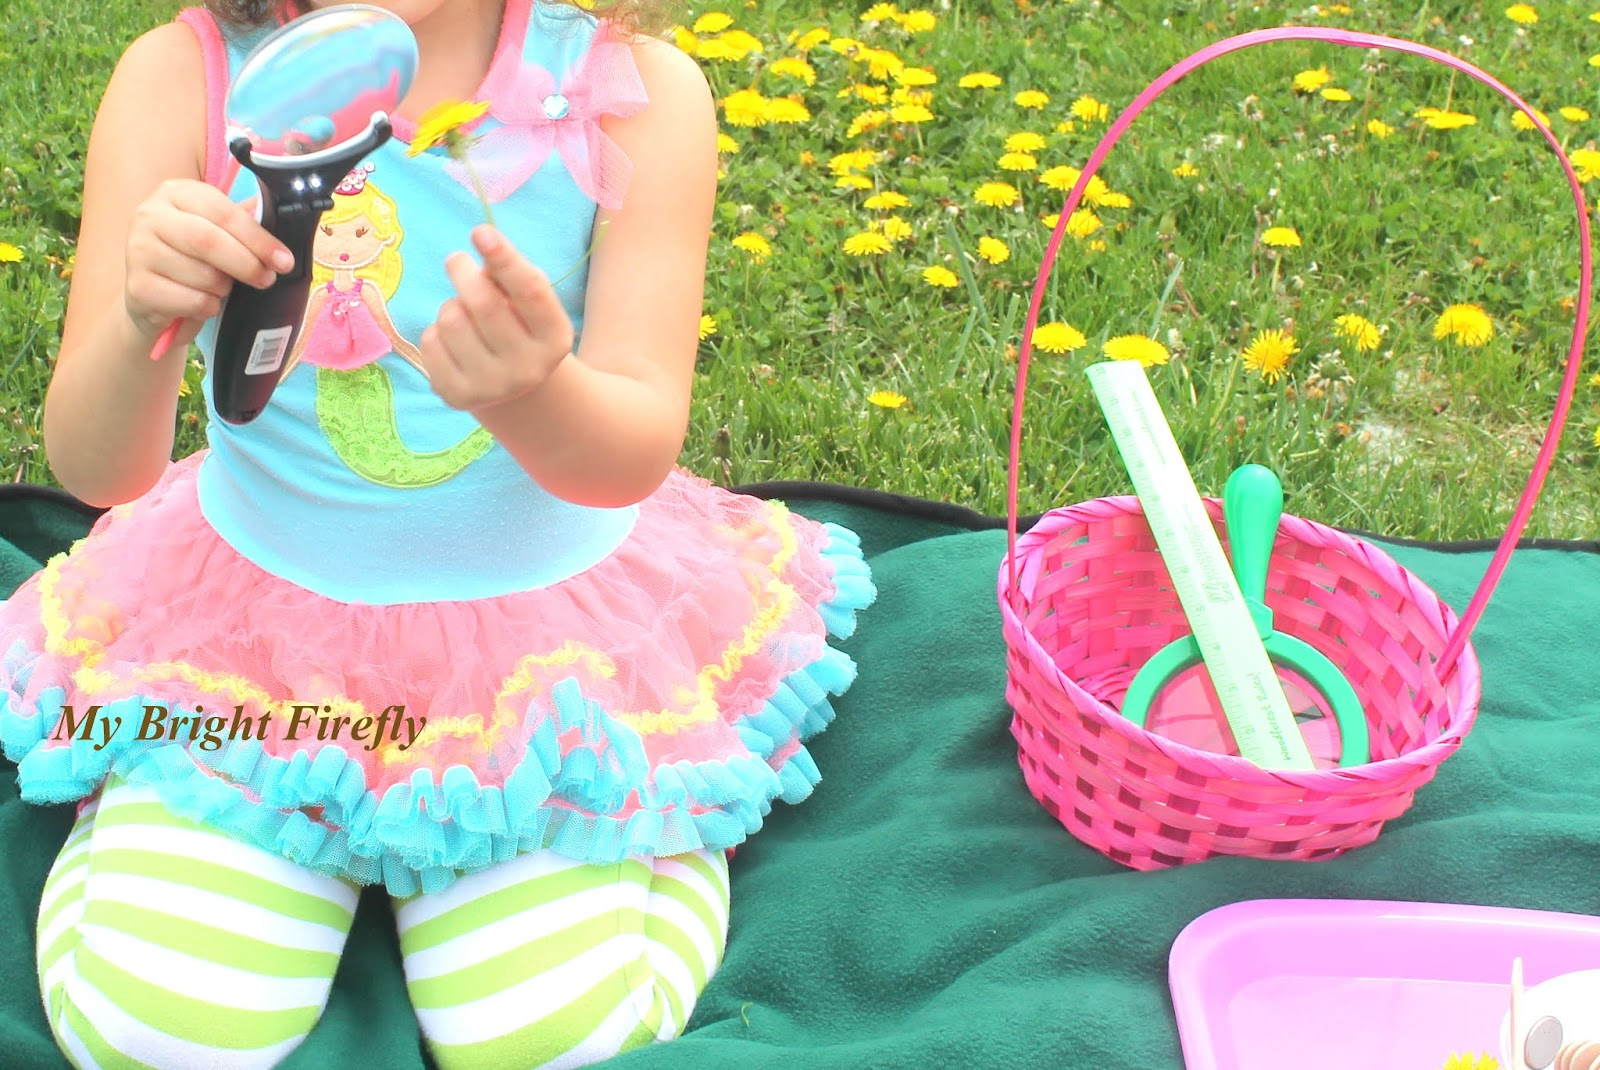 My Bright Firefly: Dandelion Art Project for Kids